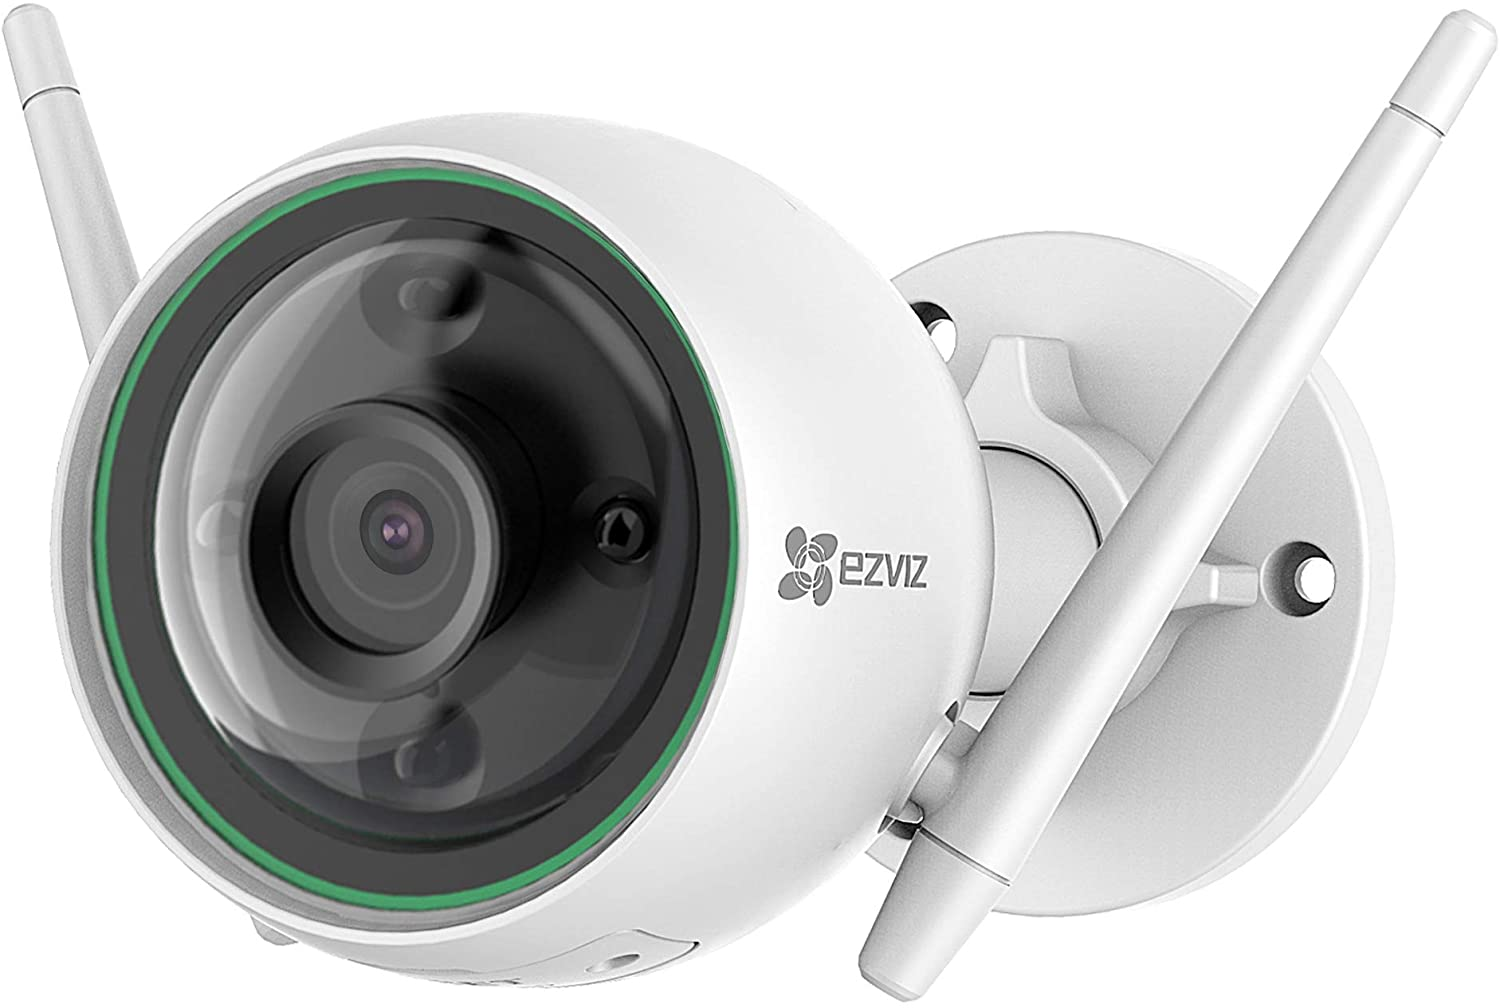 Amazon.com: EZVIZ Outdoor Security Camera Color Night Vision, 1080P  AI-Powered Person Detection, H.265, IP67 Waterproof, Customizable Detection  Zones, 2.4GHz WiFi Supports MicroSD Card up to 256GB(C3N): Electronics